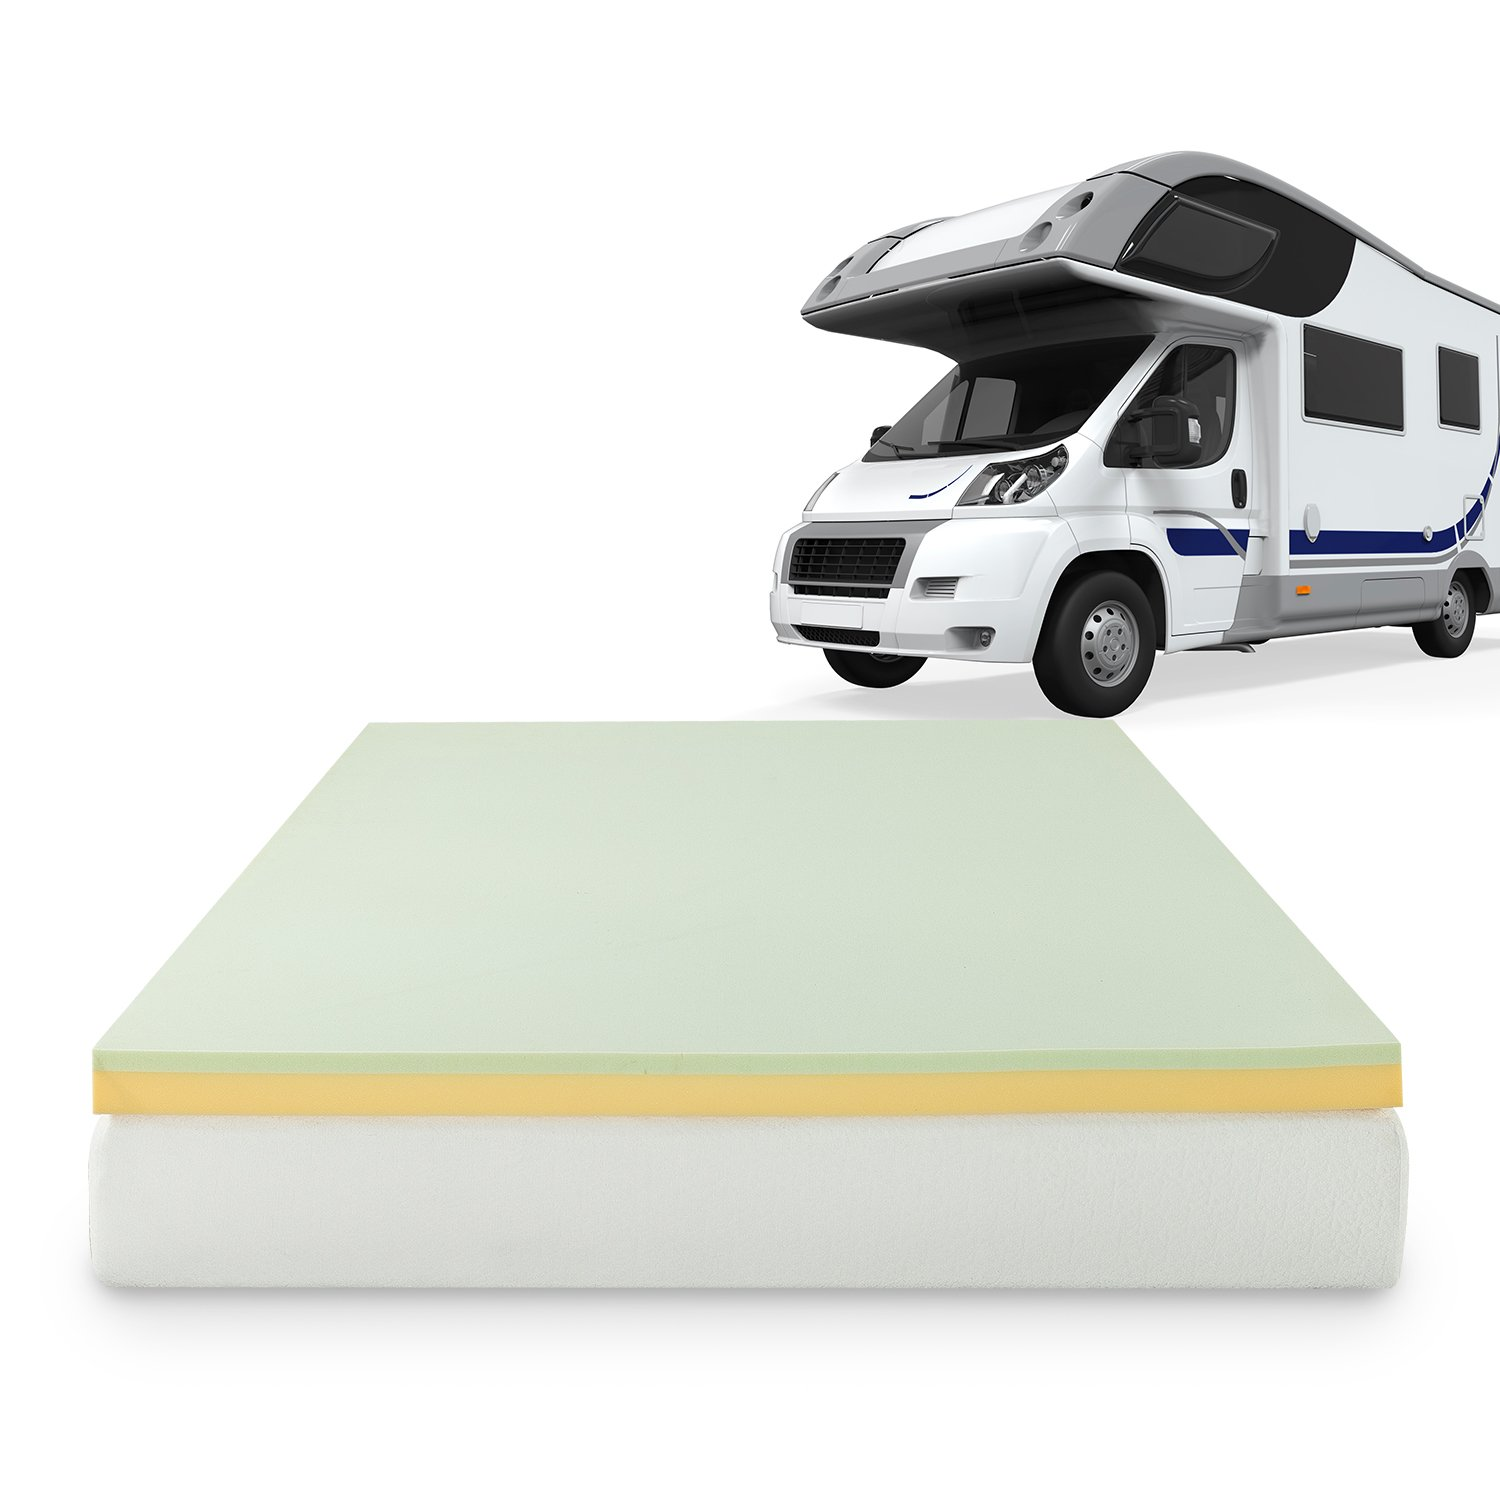 The Best Rv Mattress Toppers Amp Pads Reviews In 2019 Sleeplander